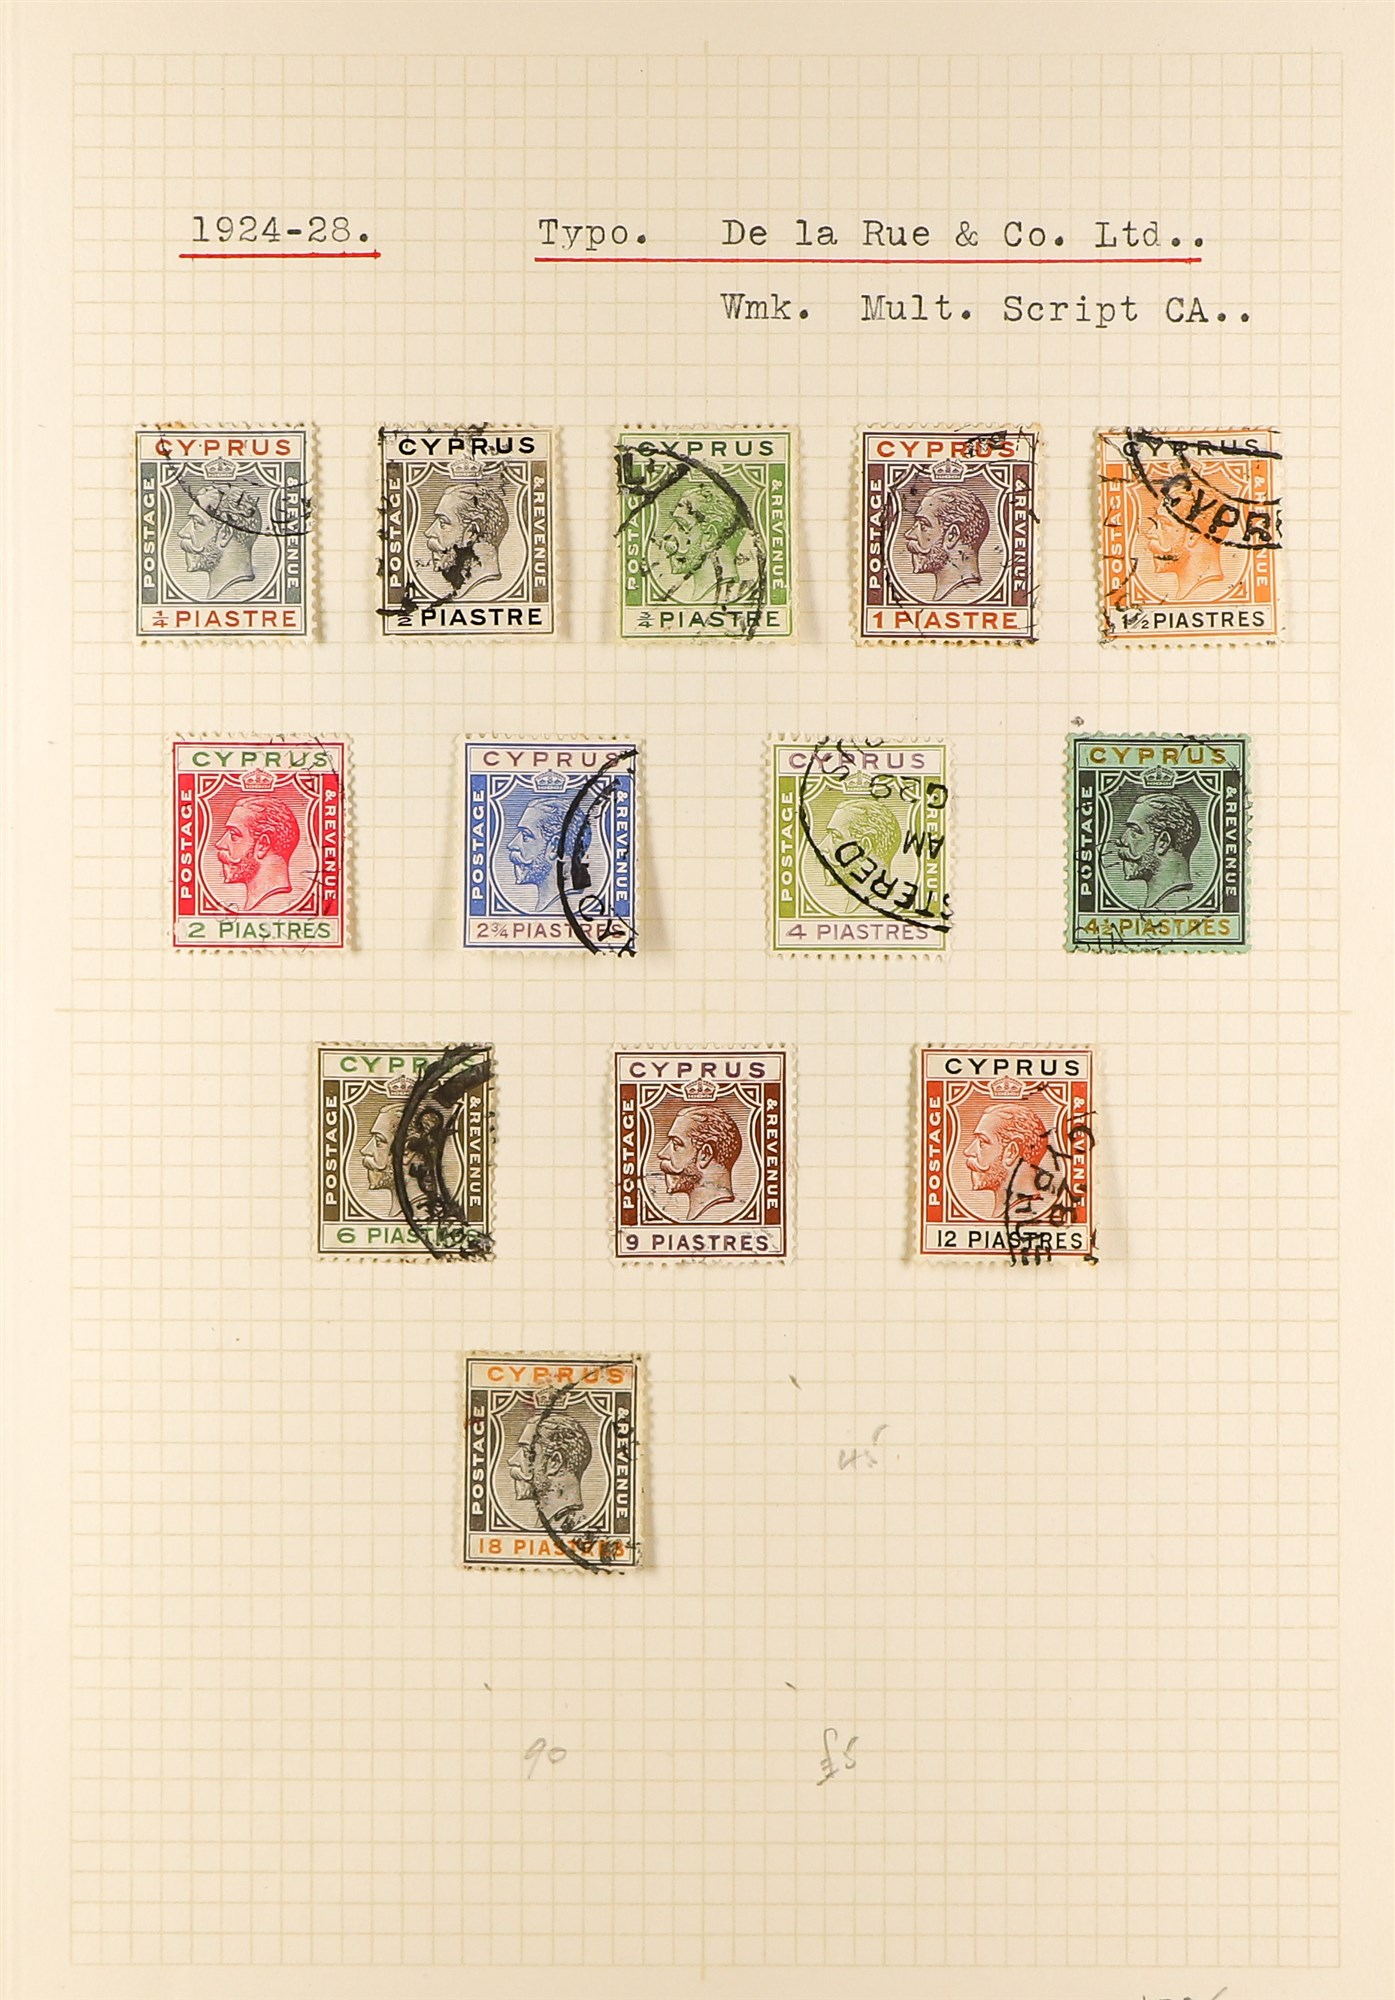 CYPRUS 1880-1935 old used collection incl. 1880 GB overprints including 2½d & ½d plate 15 used, - Image 5 of 7